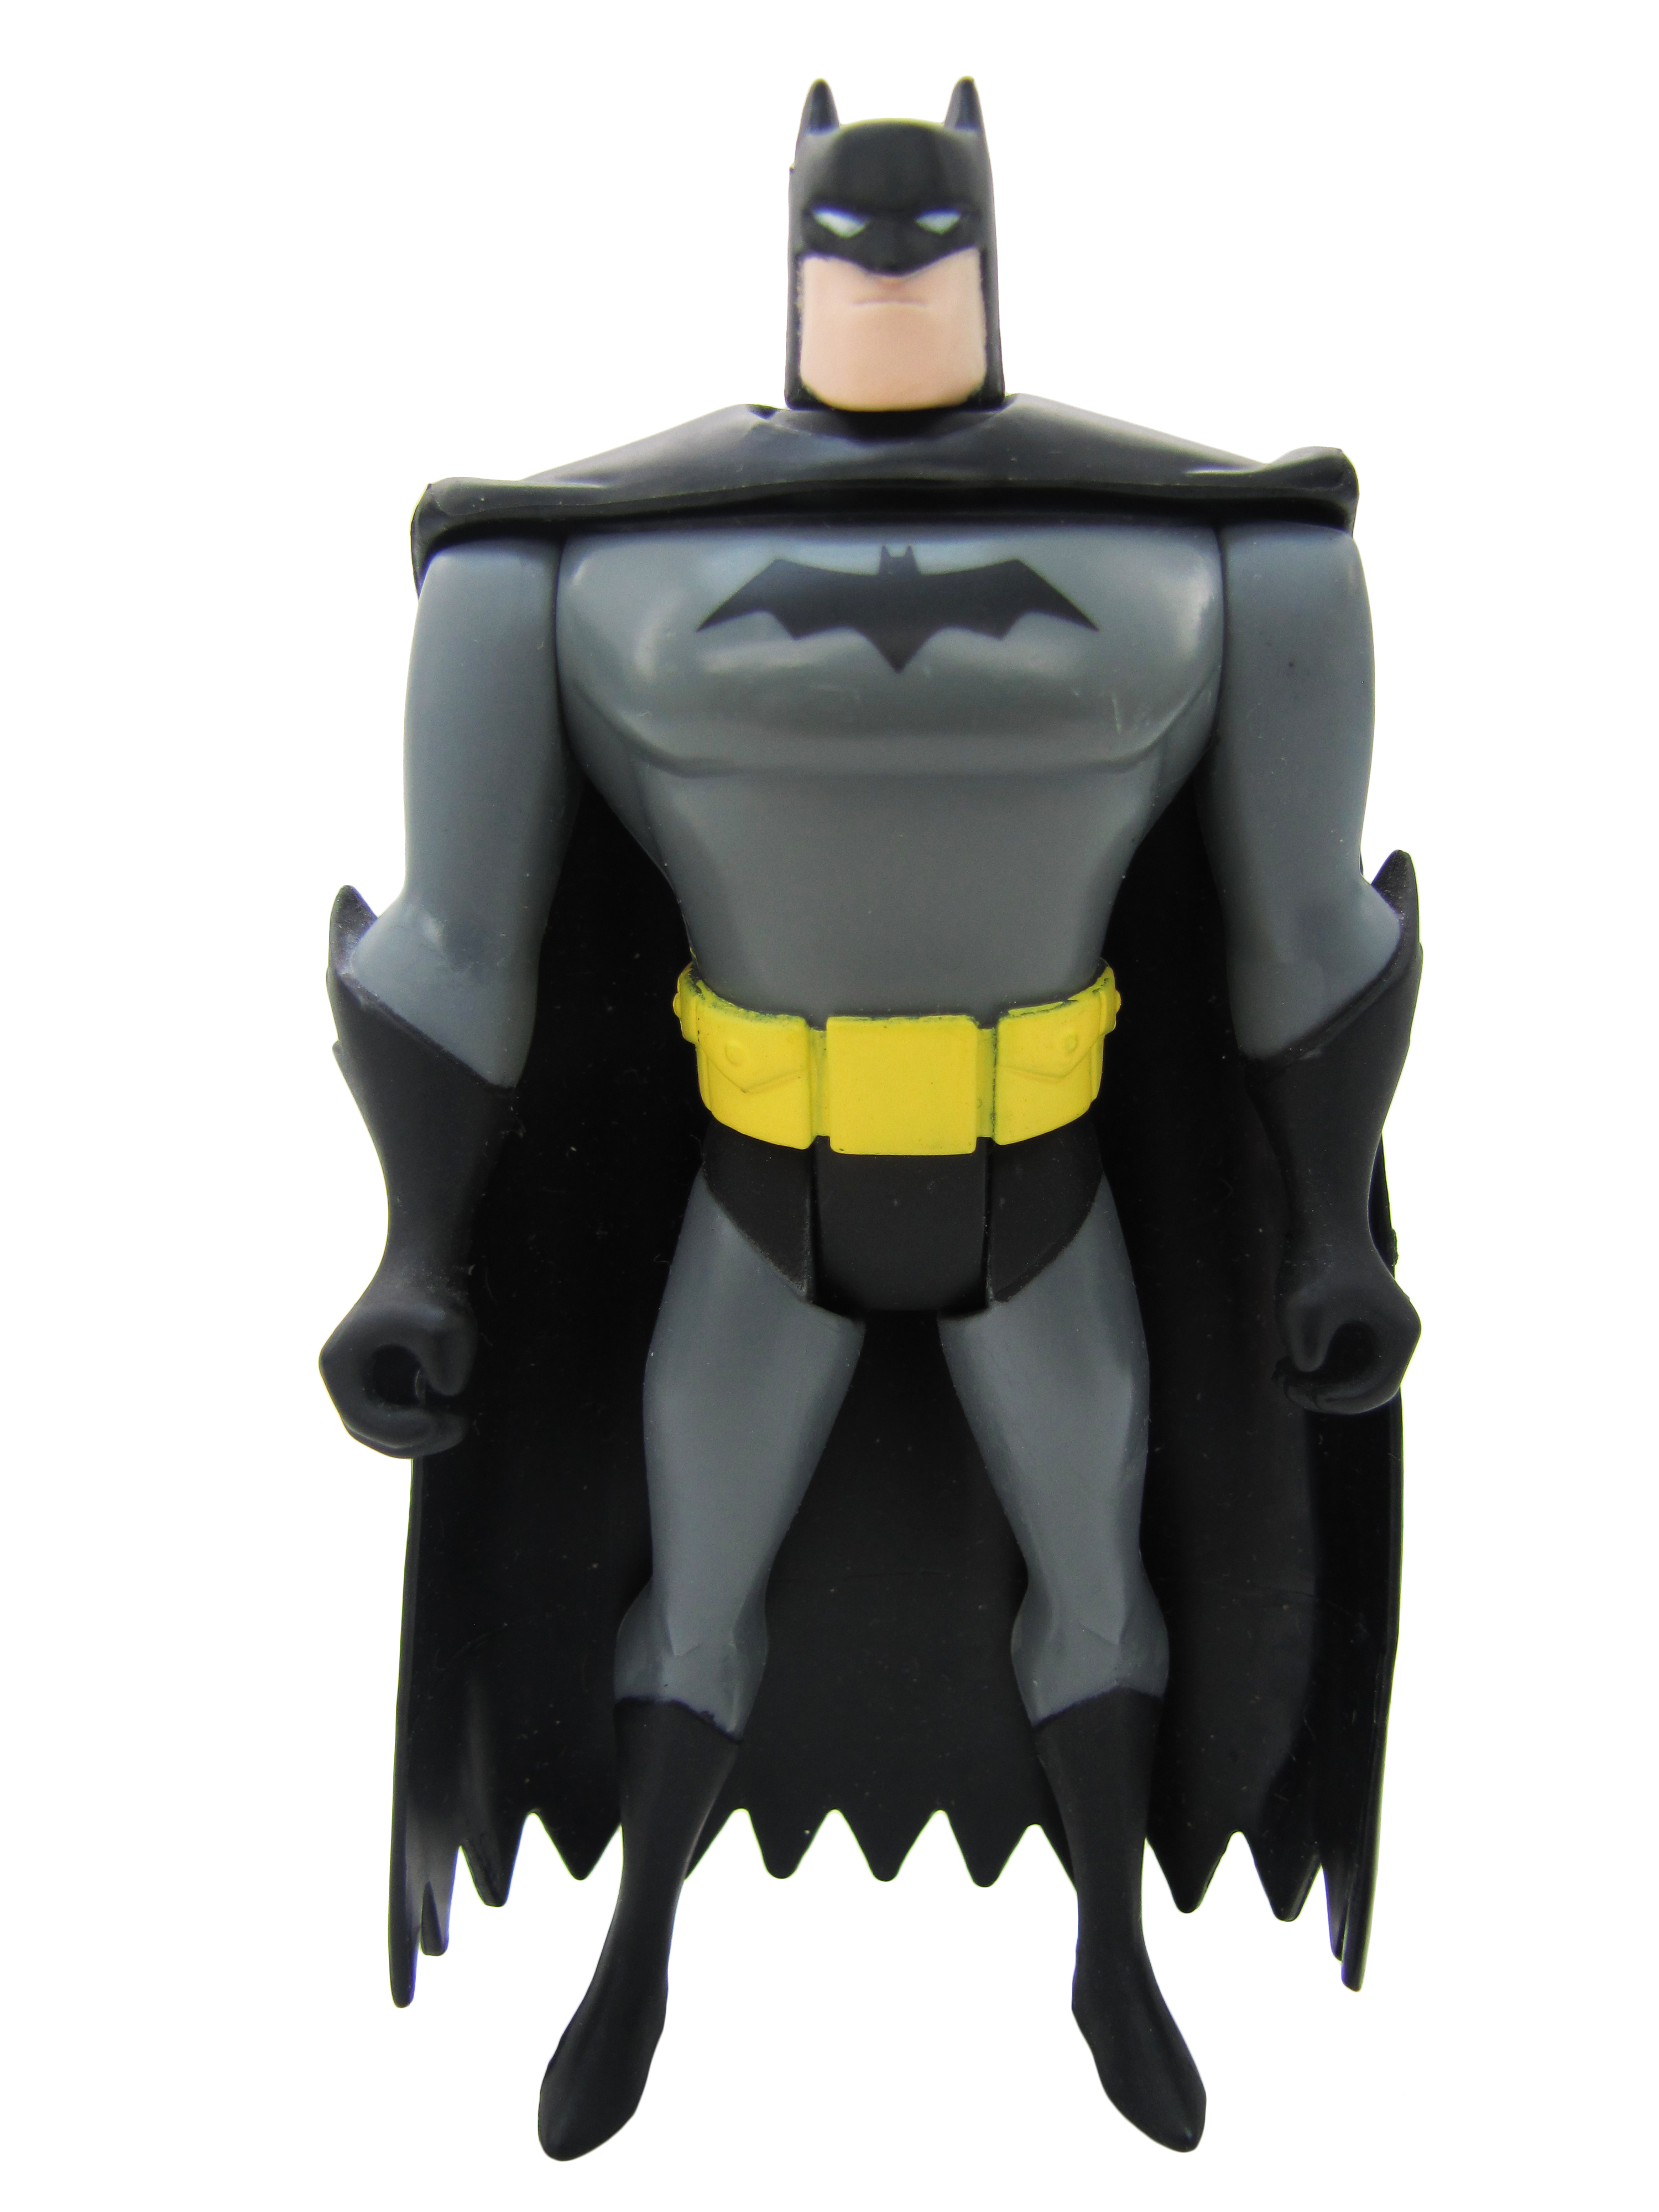 1997 The New Batman Adventures DETECTIVE BATMAN Mint